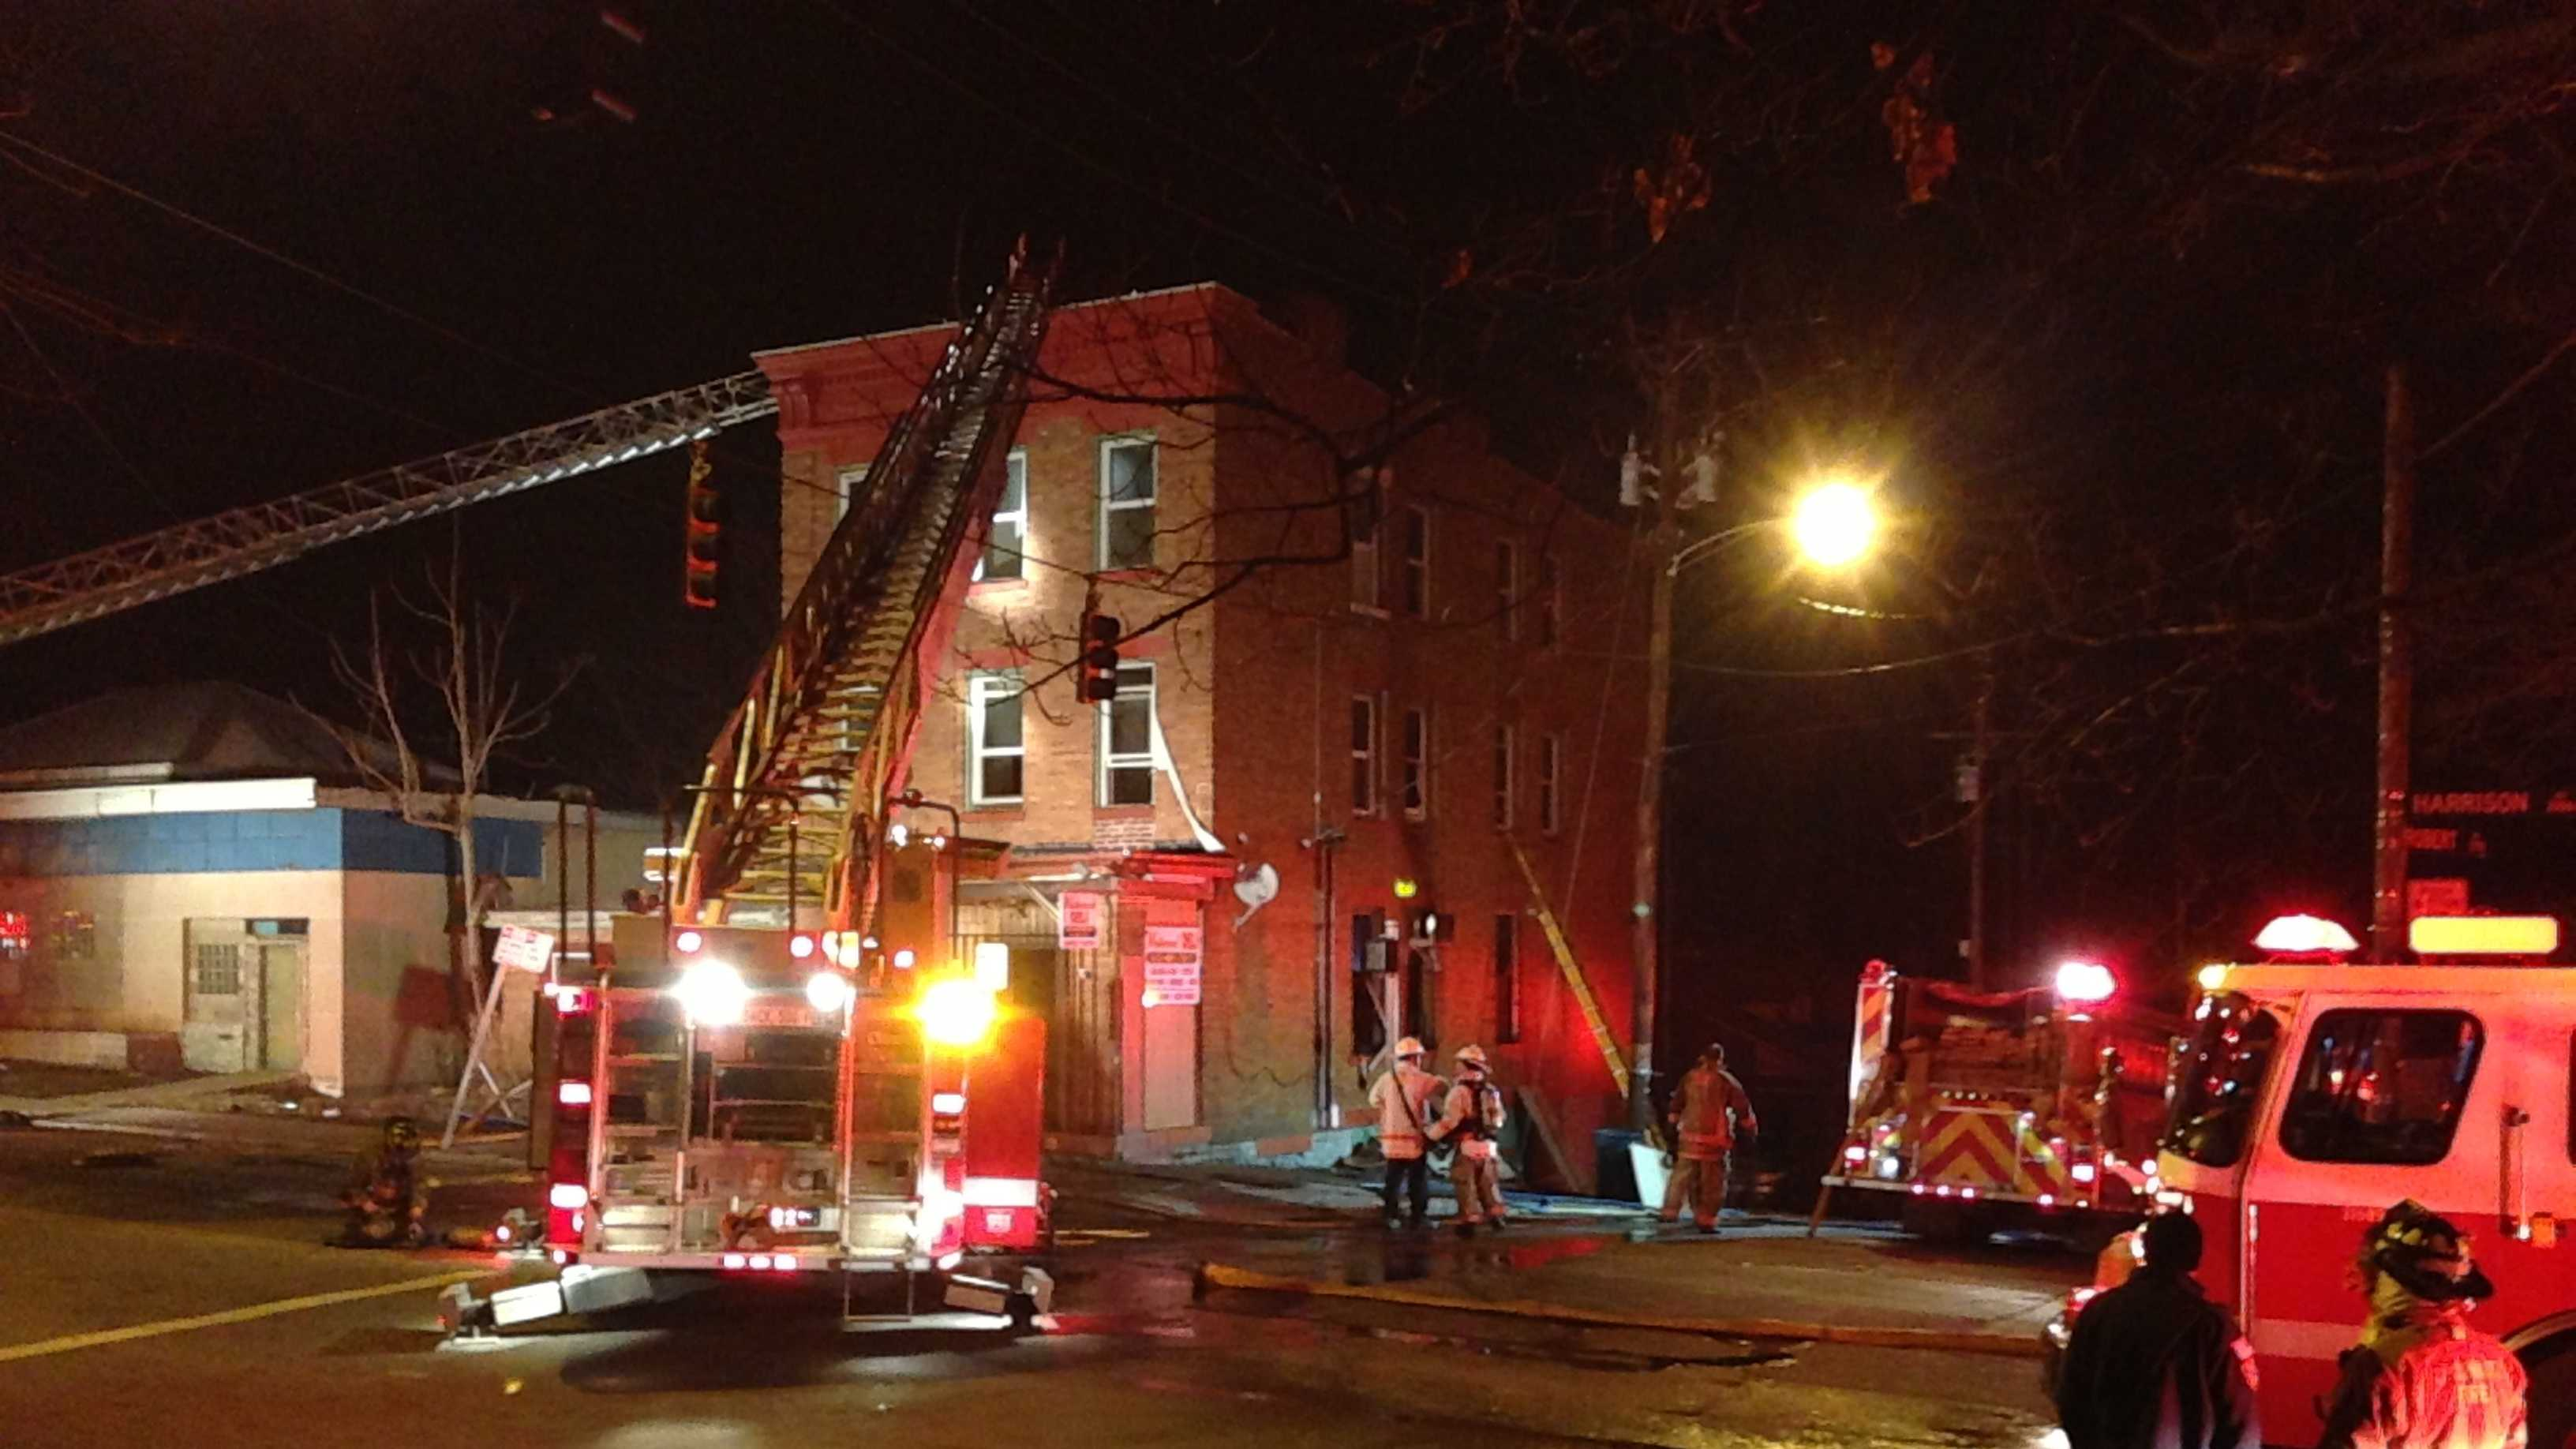 A woman told firefighters that she broke her leg after jumping from a window to escape a 2-alarm fire in Westwood.